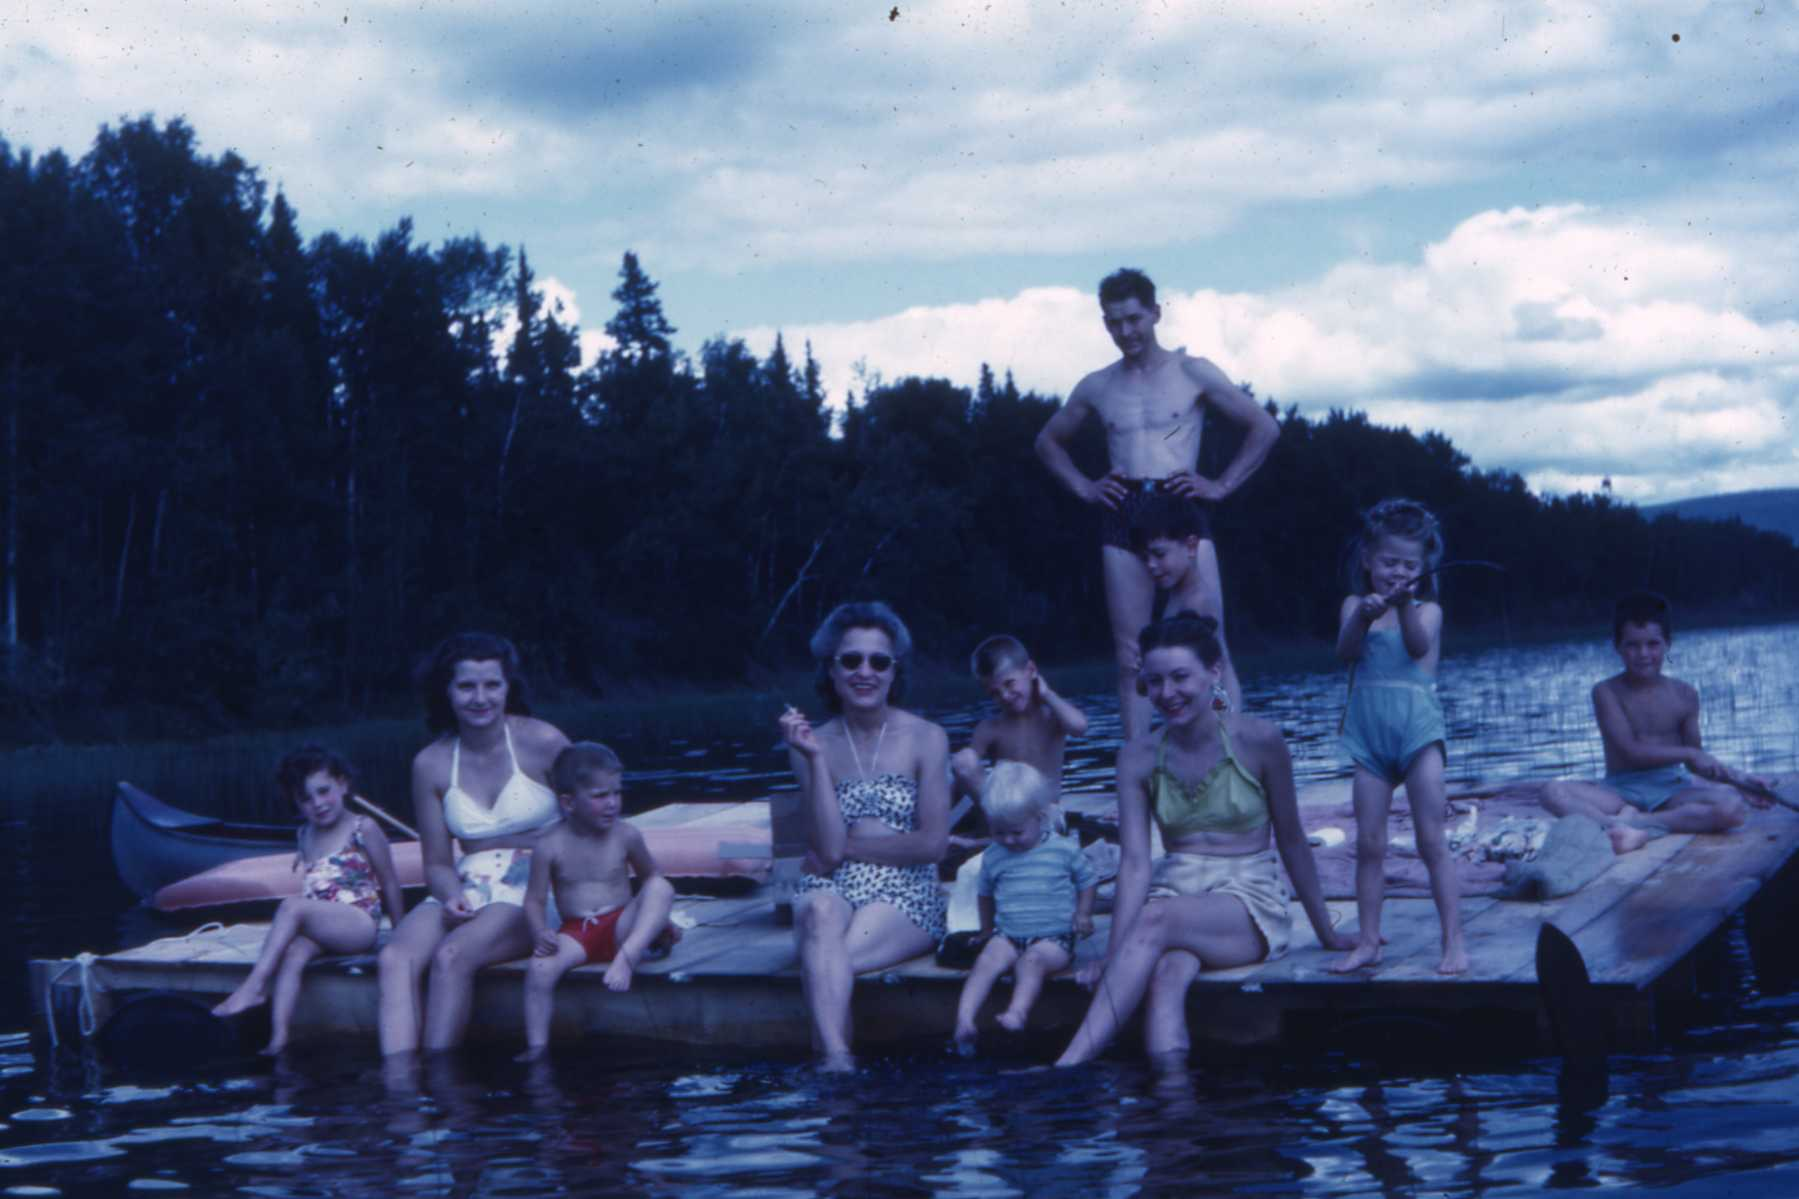 1946 with members of the Cook, Baggen and Clasby families.  Our mom is on the far left in the white swimming suit.  The younger lake generation will find it hard to believe there was no electricity and no phone service back then.  Electricity did not come